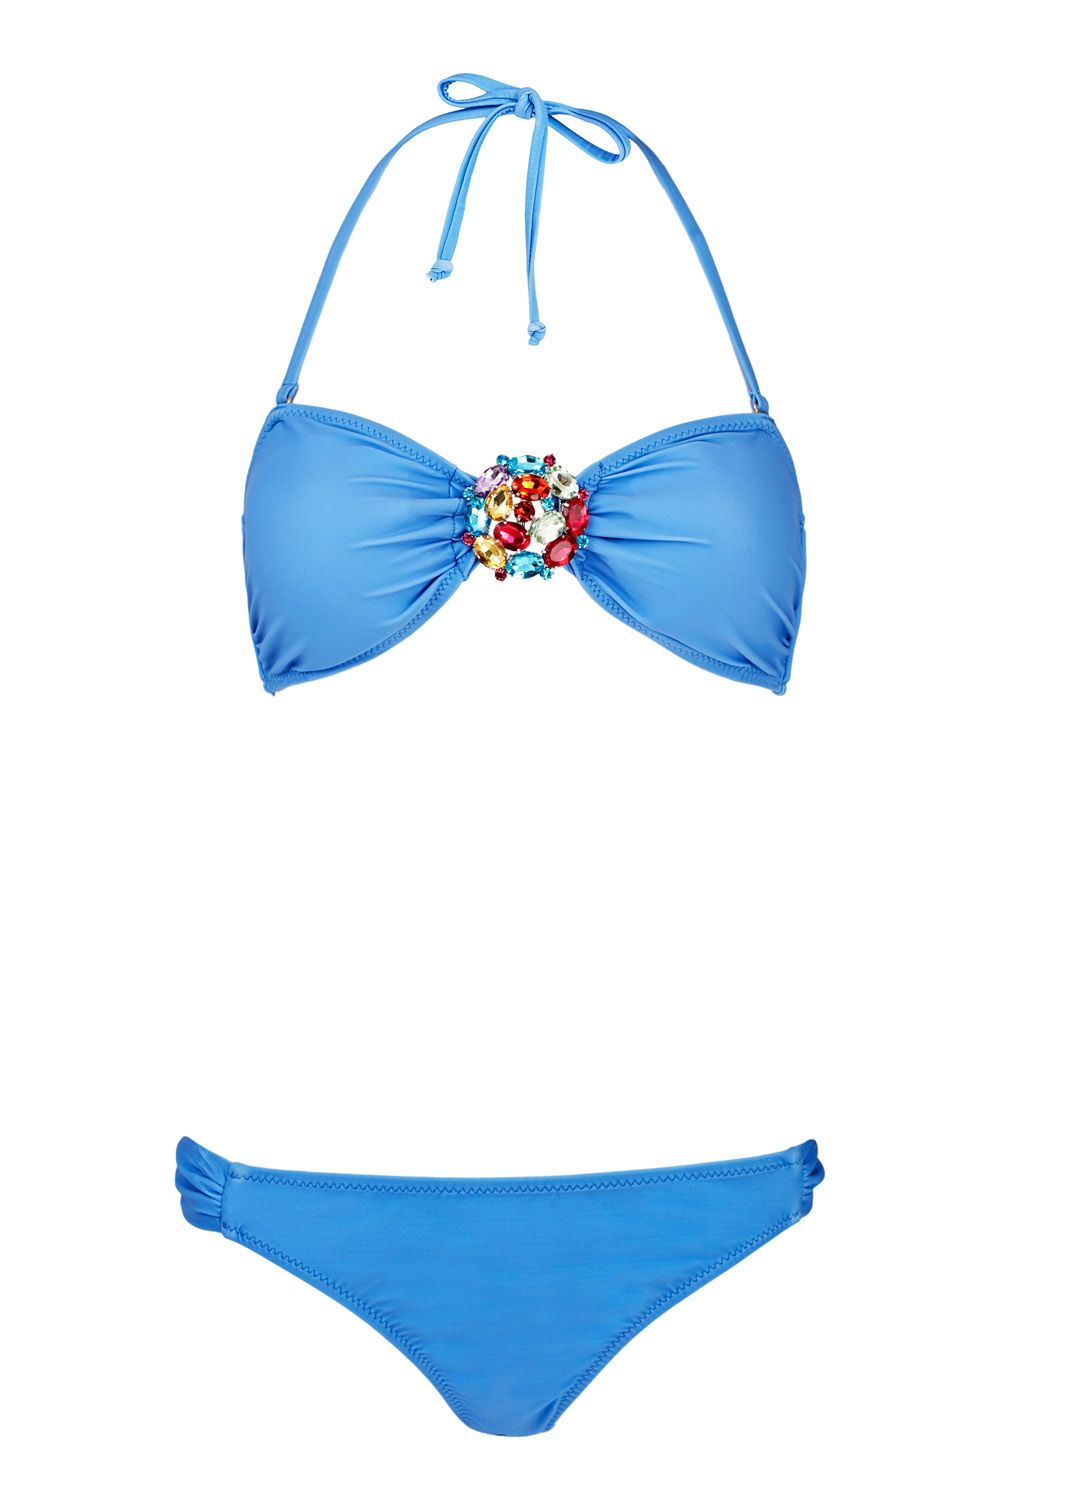 Lucy Jewel Front Bandeau Bikini in Delicious Blue